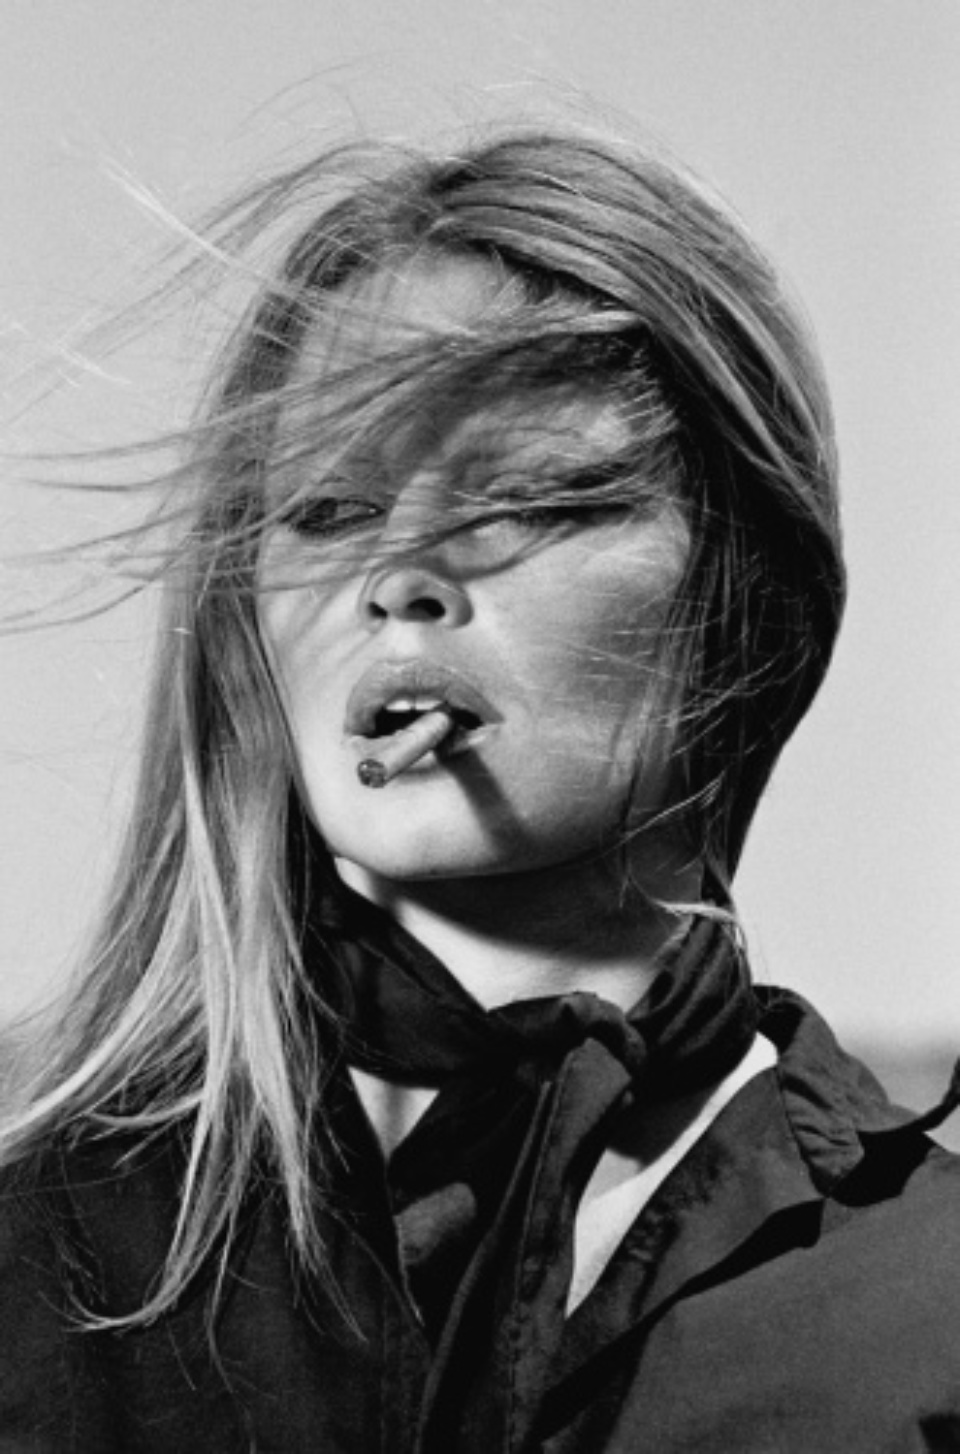 Terry O'Neill: Brigitte Bardot, Spain, 1971 Gelatin silver print Signed on recto 150 x 101 cm